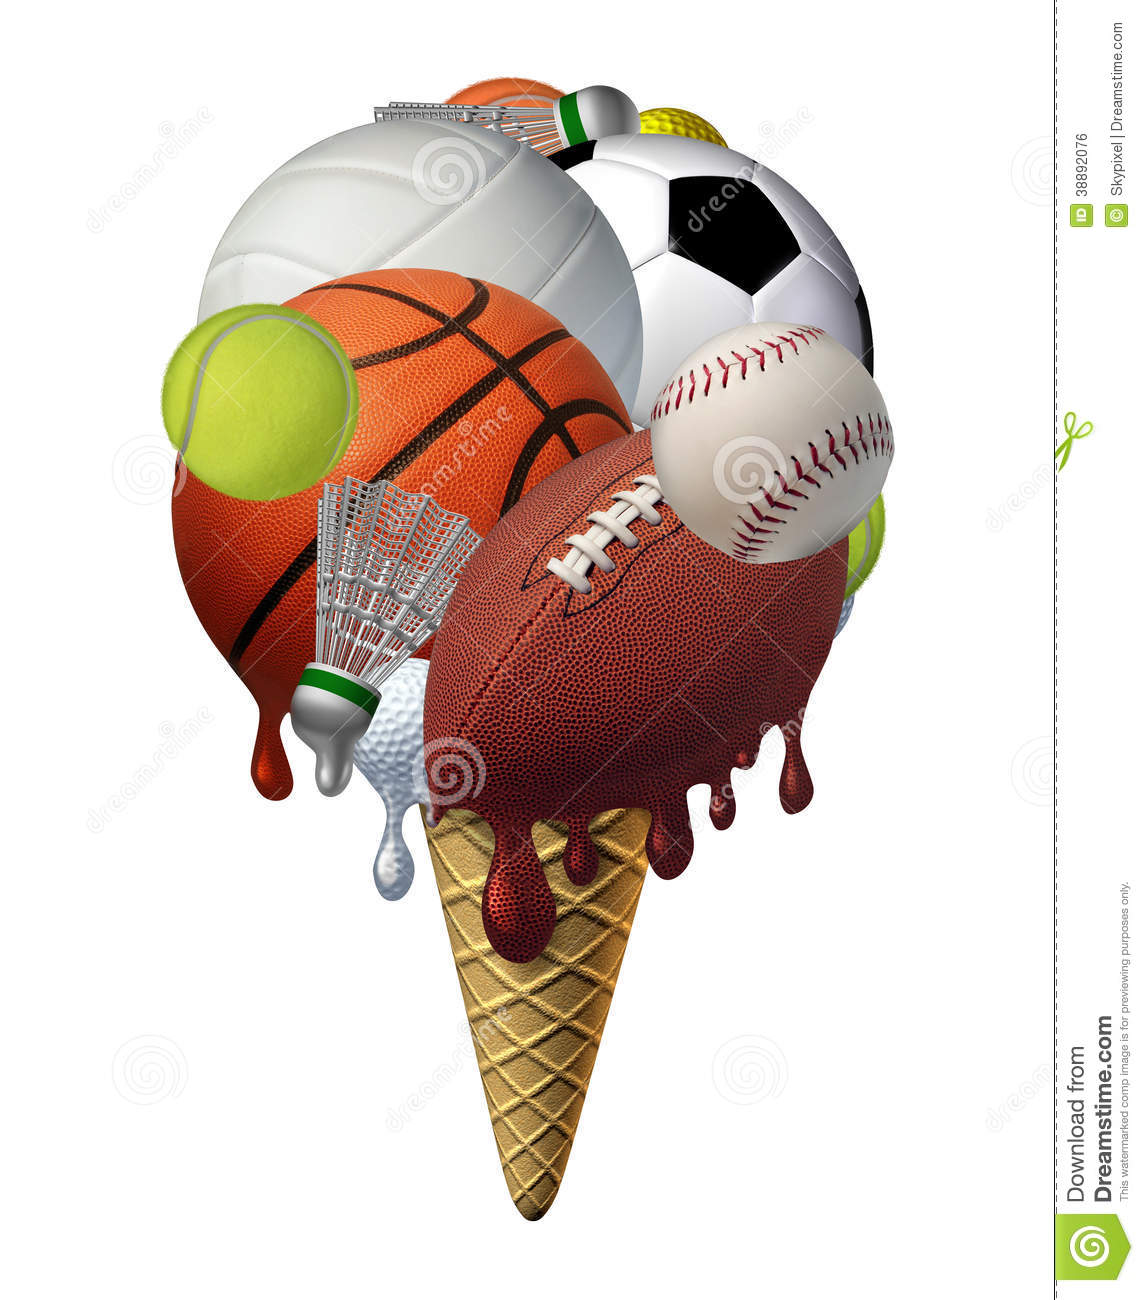 Summer Sports Stock Illustration - Image: 38892076